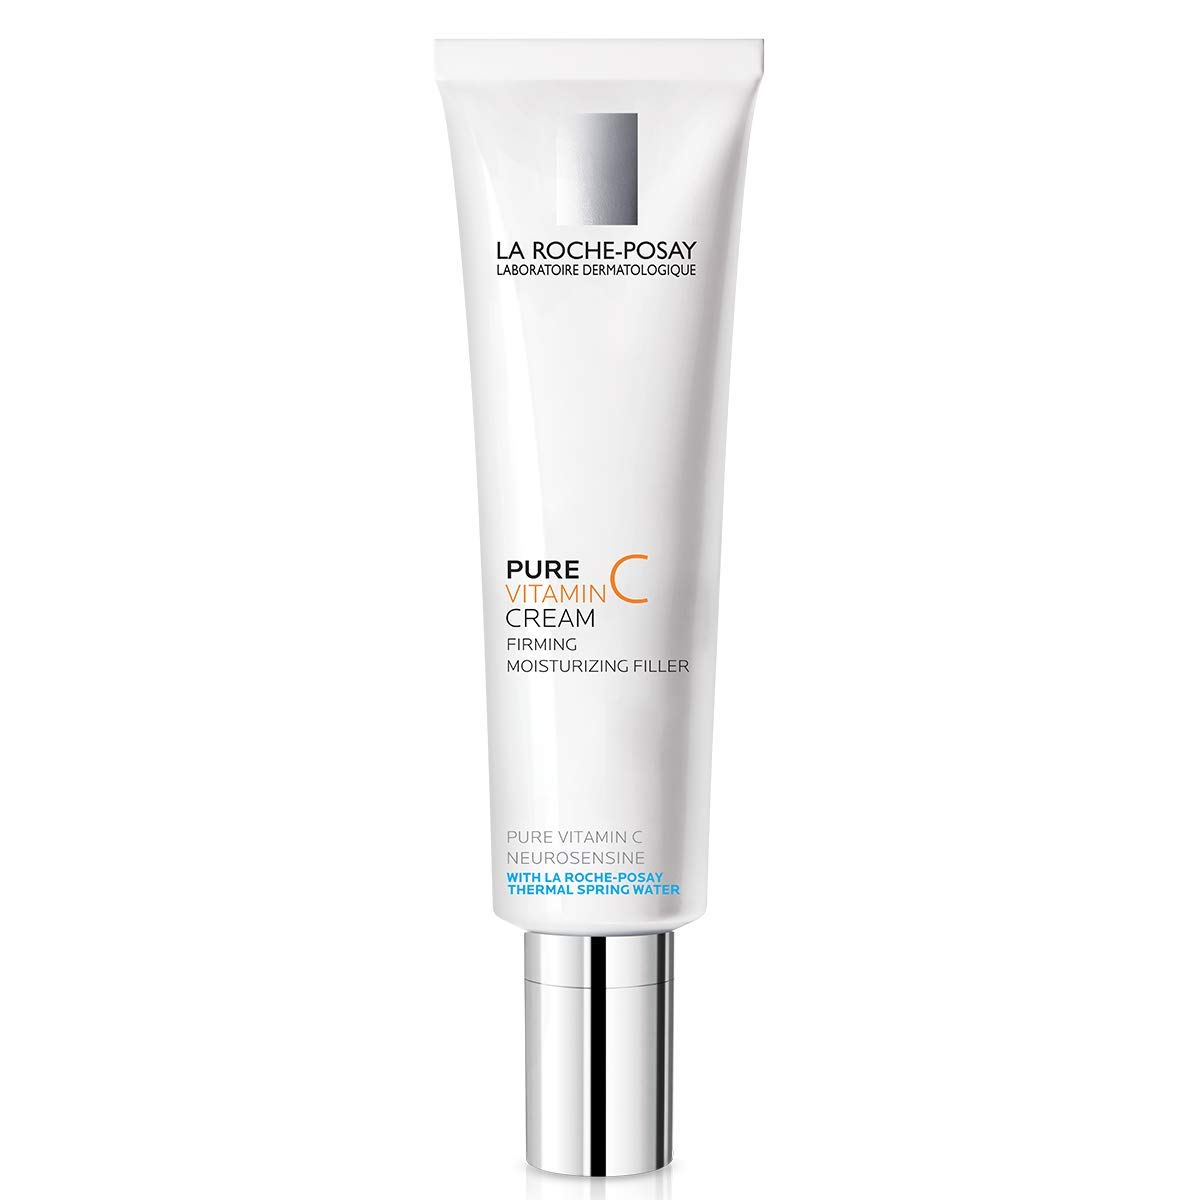 La Roche-Posay Redermic C Anti-Wrinkle Vitamin C Moisturizer with Pure Vitamin C & Hyaluronic Acid for Normal to Combo Skin, 1.35 Fl. Oz.